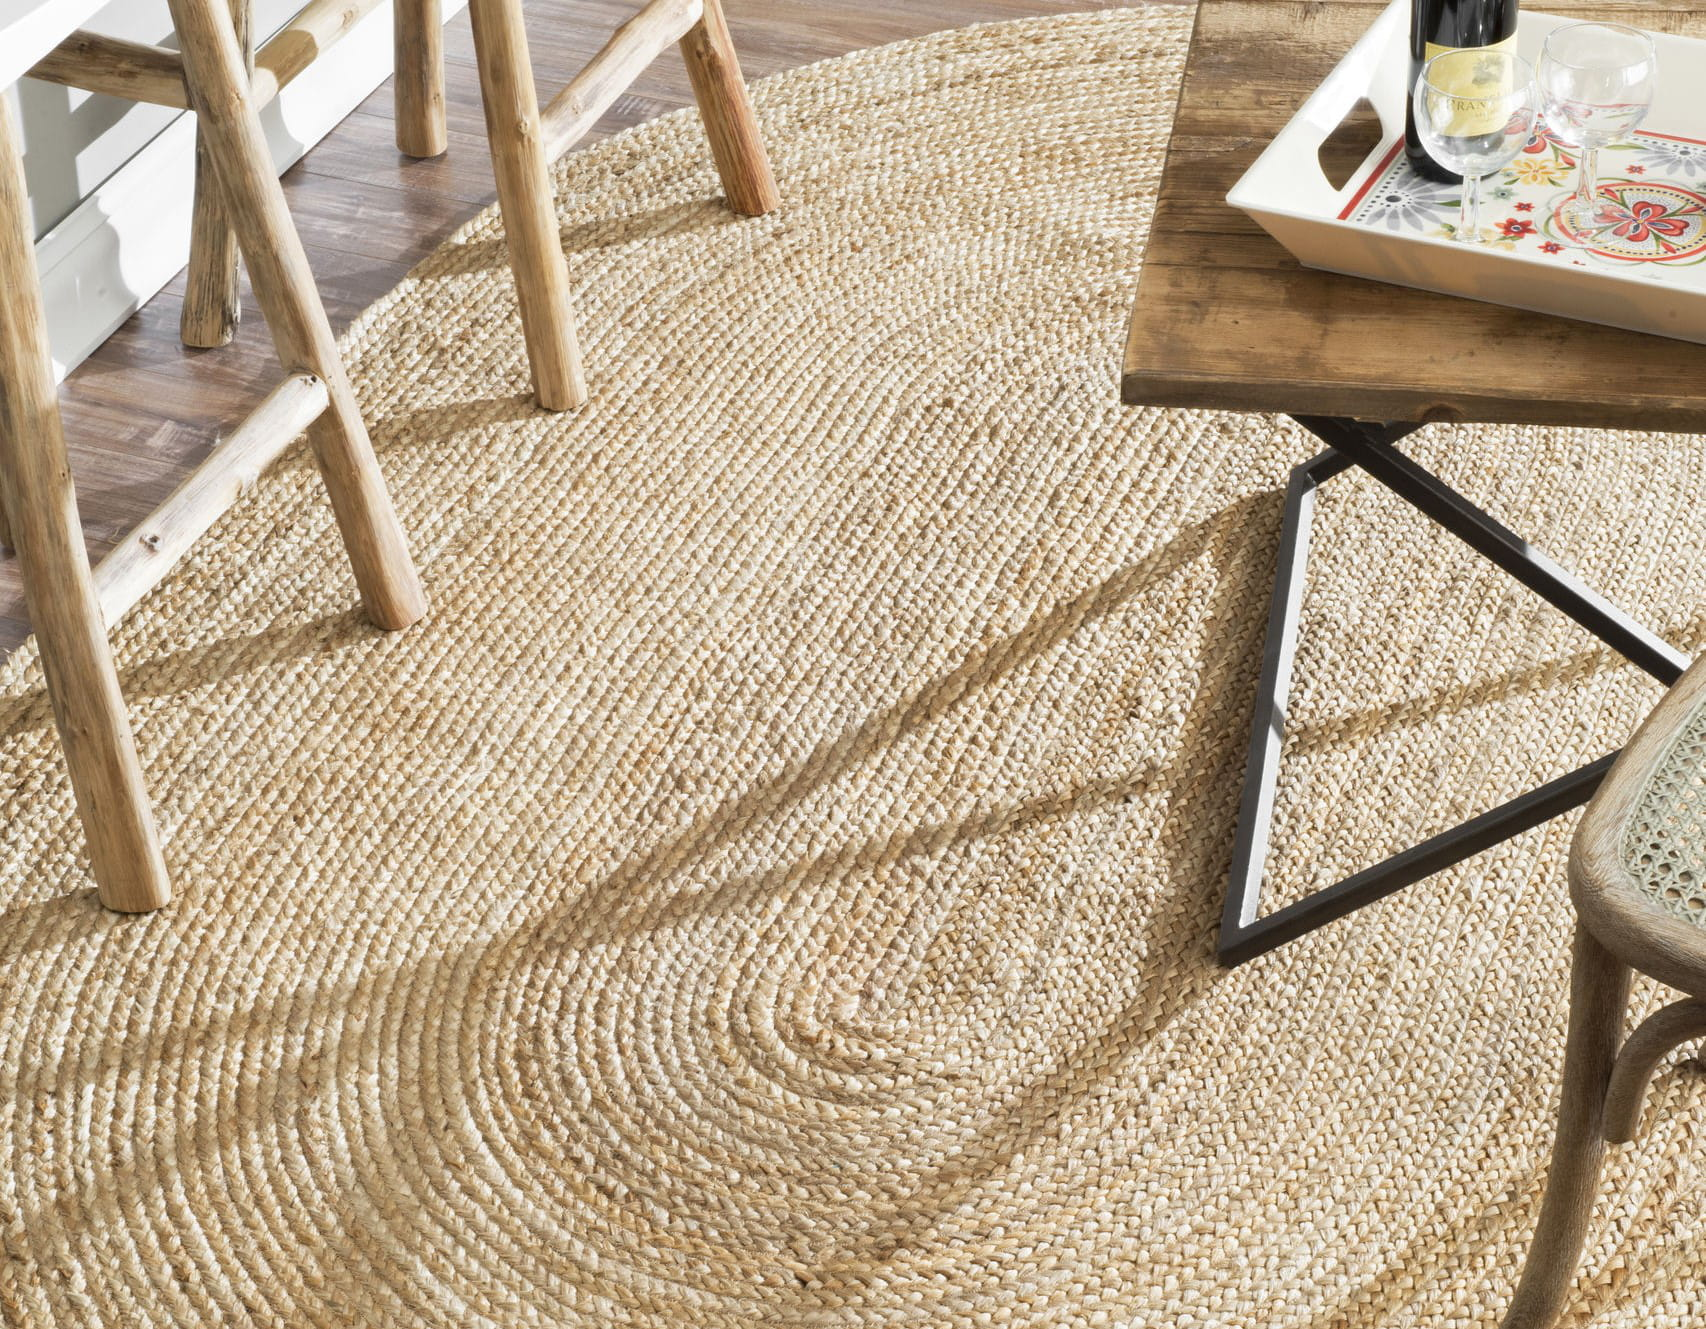 How To Clean A Jute Rug Plushrugs